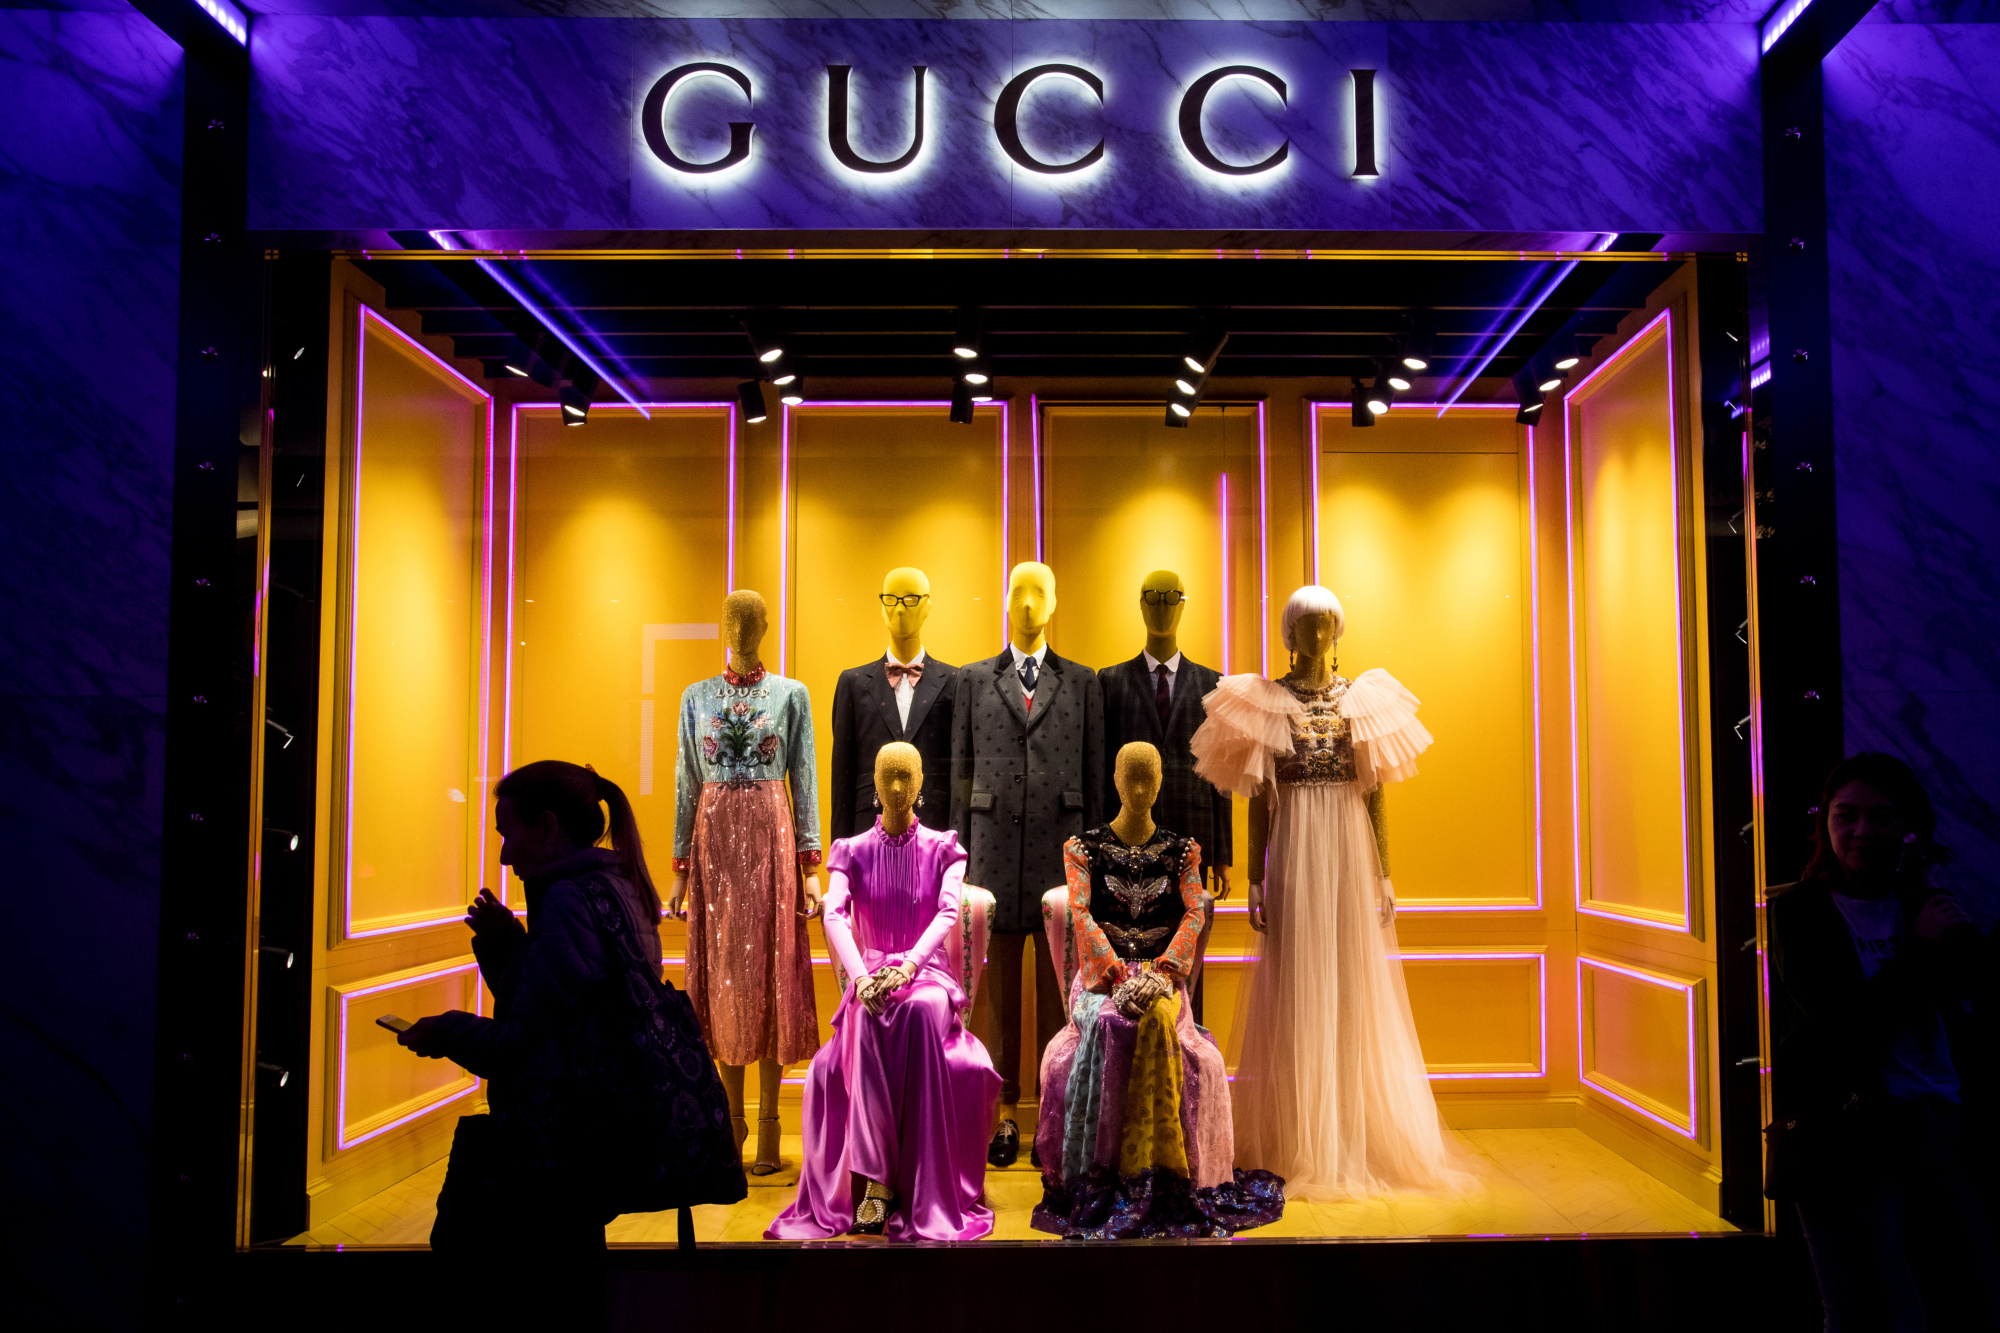 A pedestrian walks past a window display at a Guccio Gucci SpA store at Harbour City shopping mall, operated by Wharf Holdings Ltd., in the Tsim Sha Tsui district of Hong Kong, China